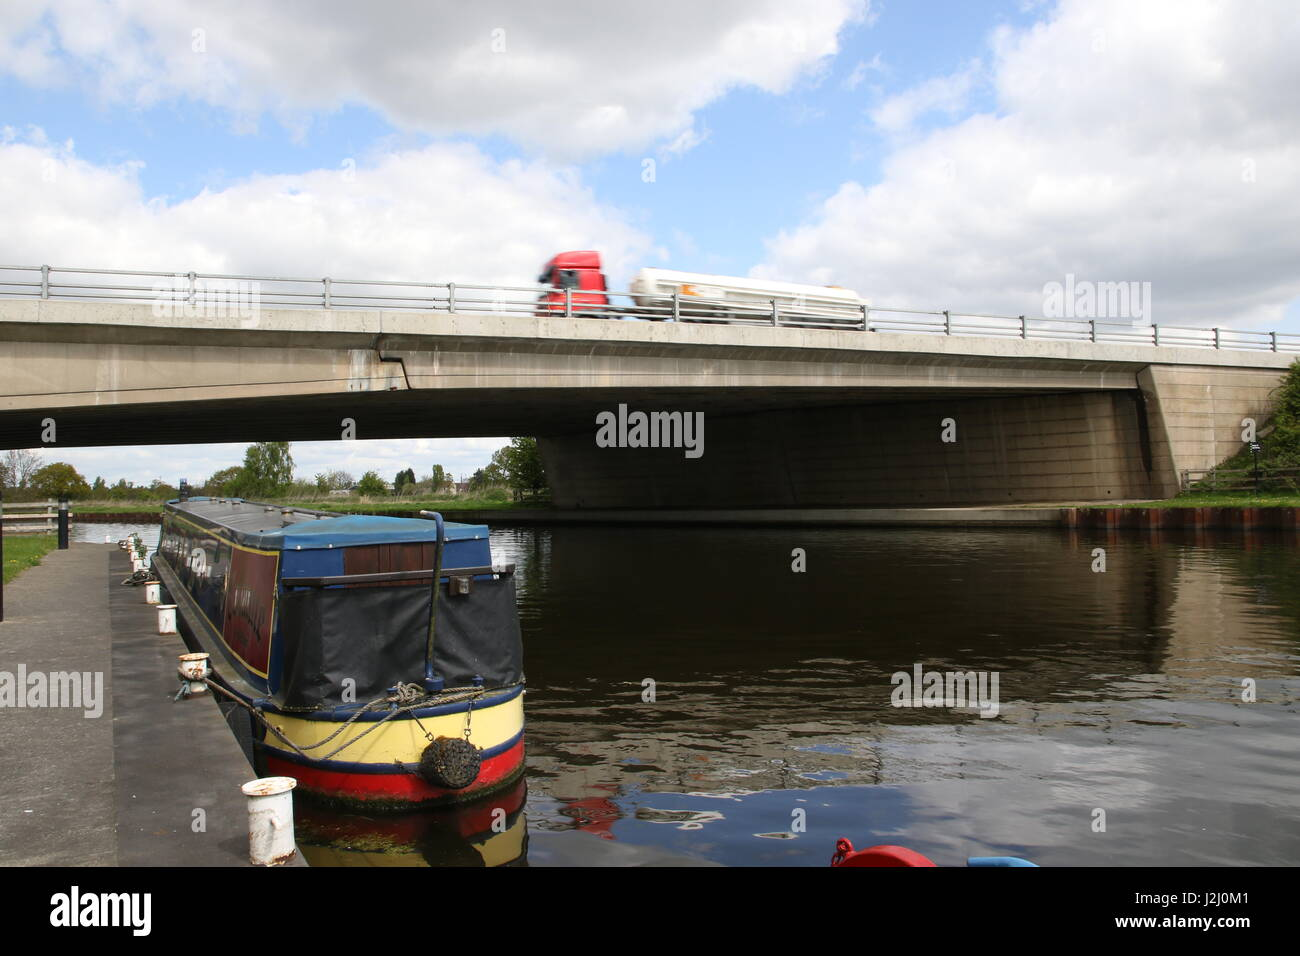 A lorry passes over a motorway bridge crossing the Aire Calder Navigation Canal with a barge moored along the towpath - Stock Image